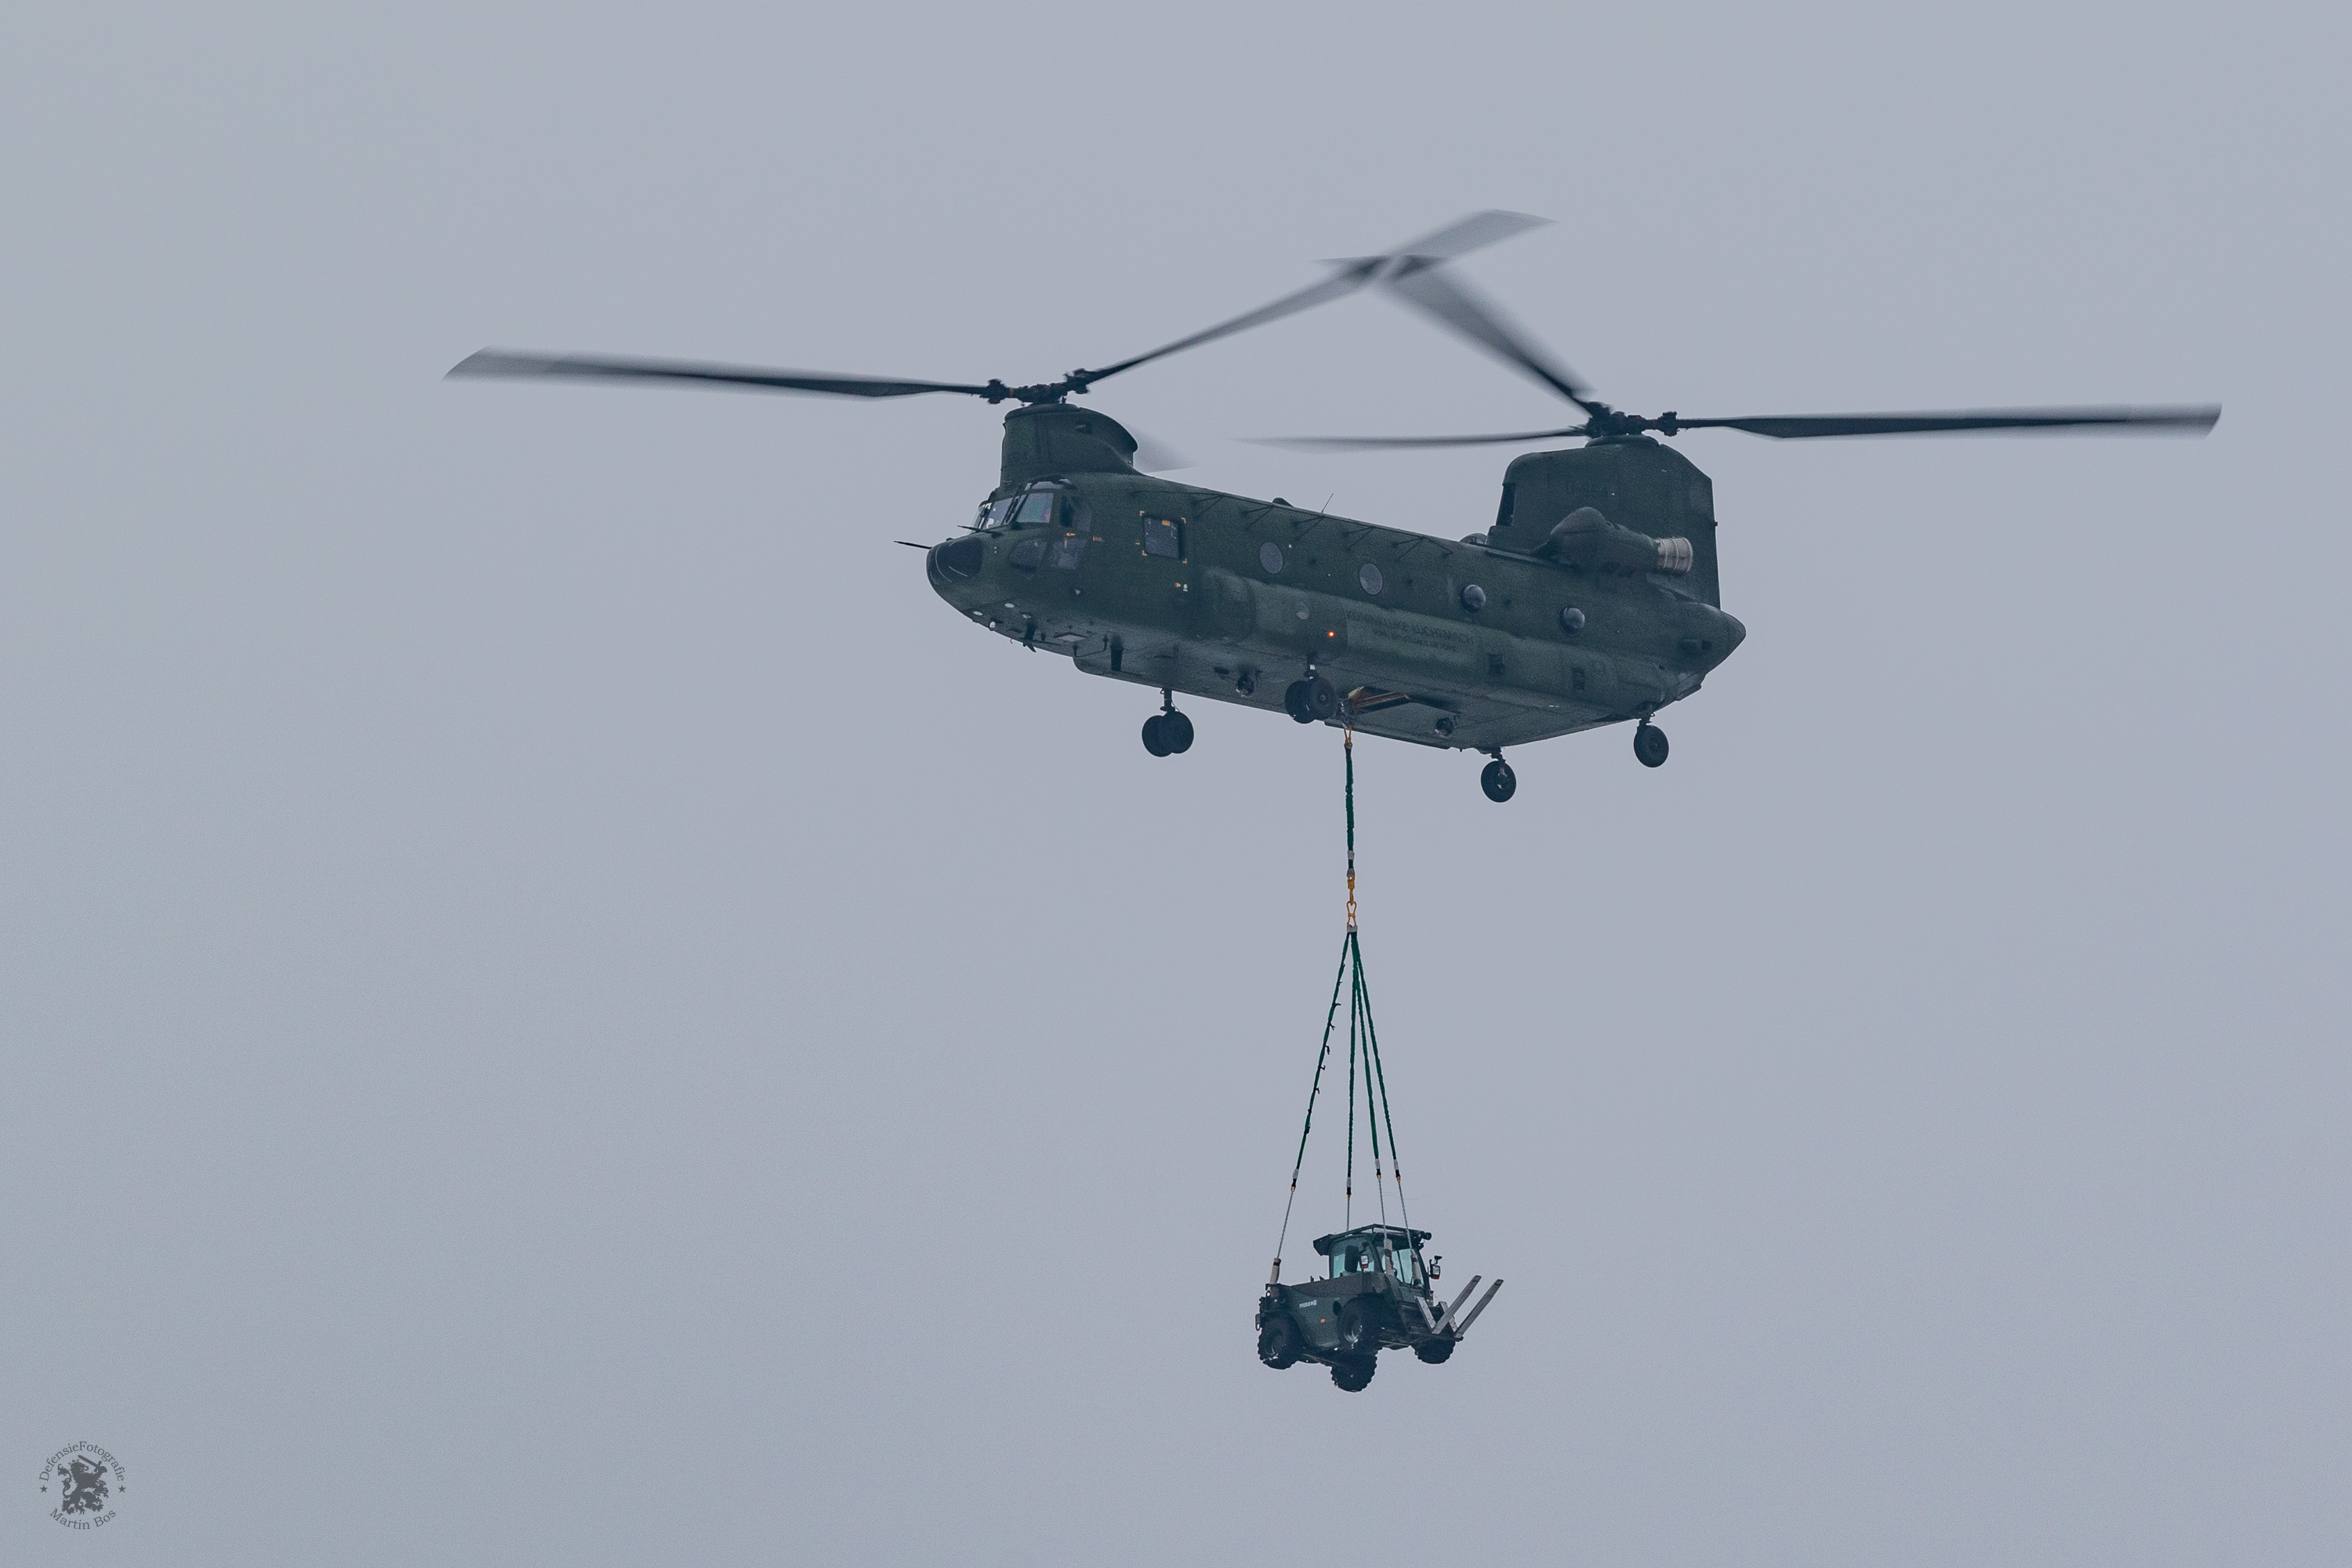 Chinook met heftruck slingload